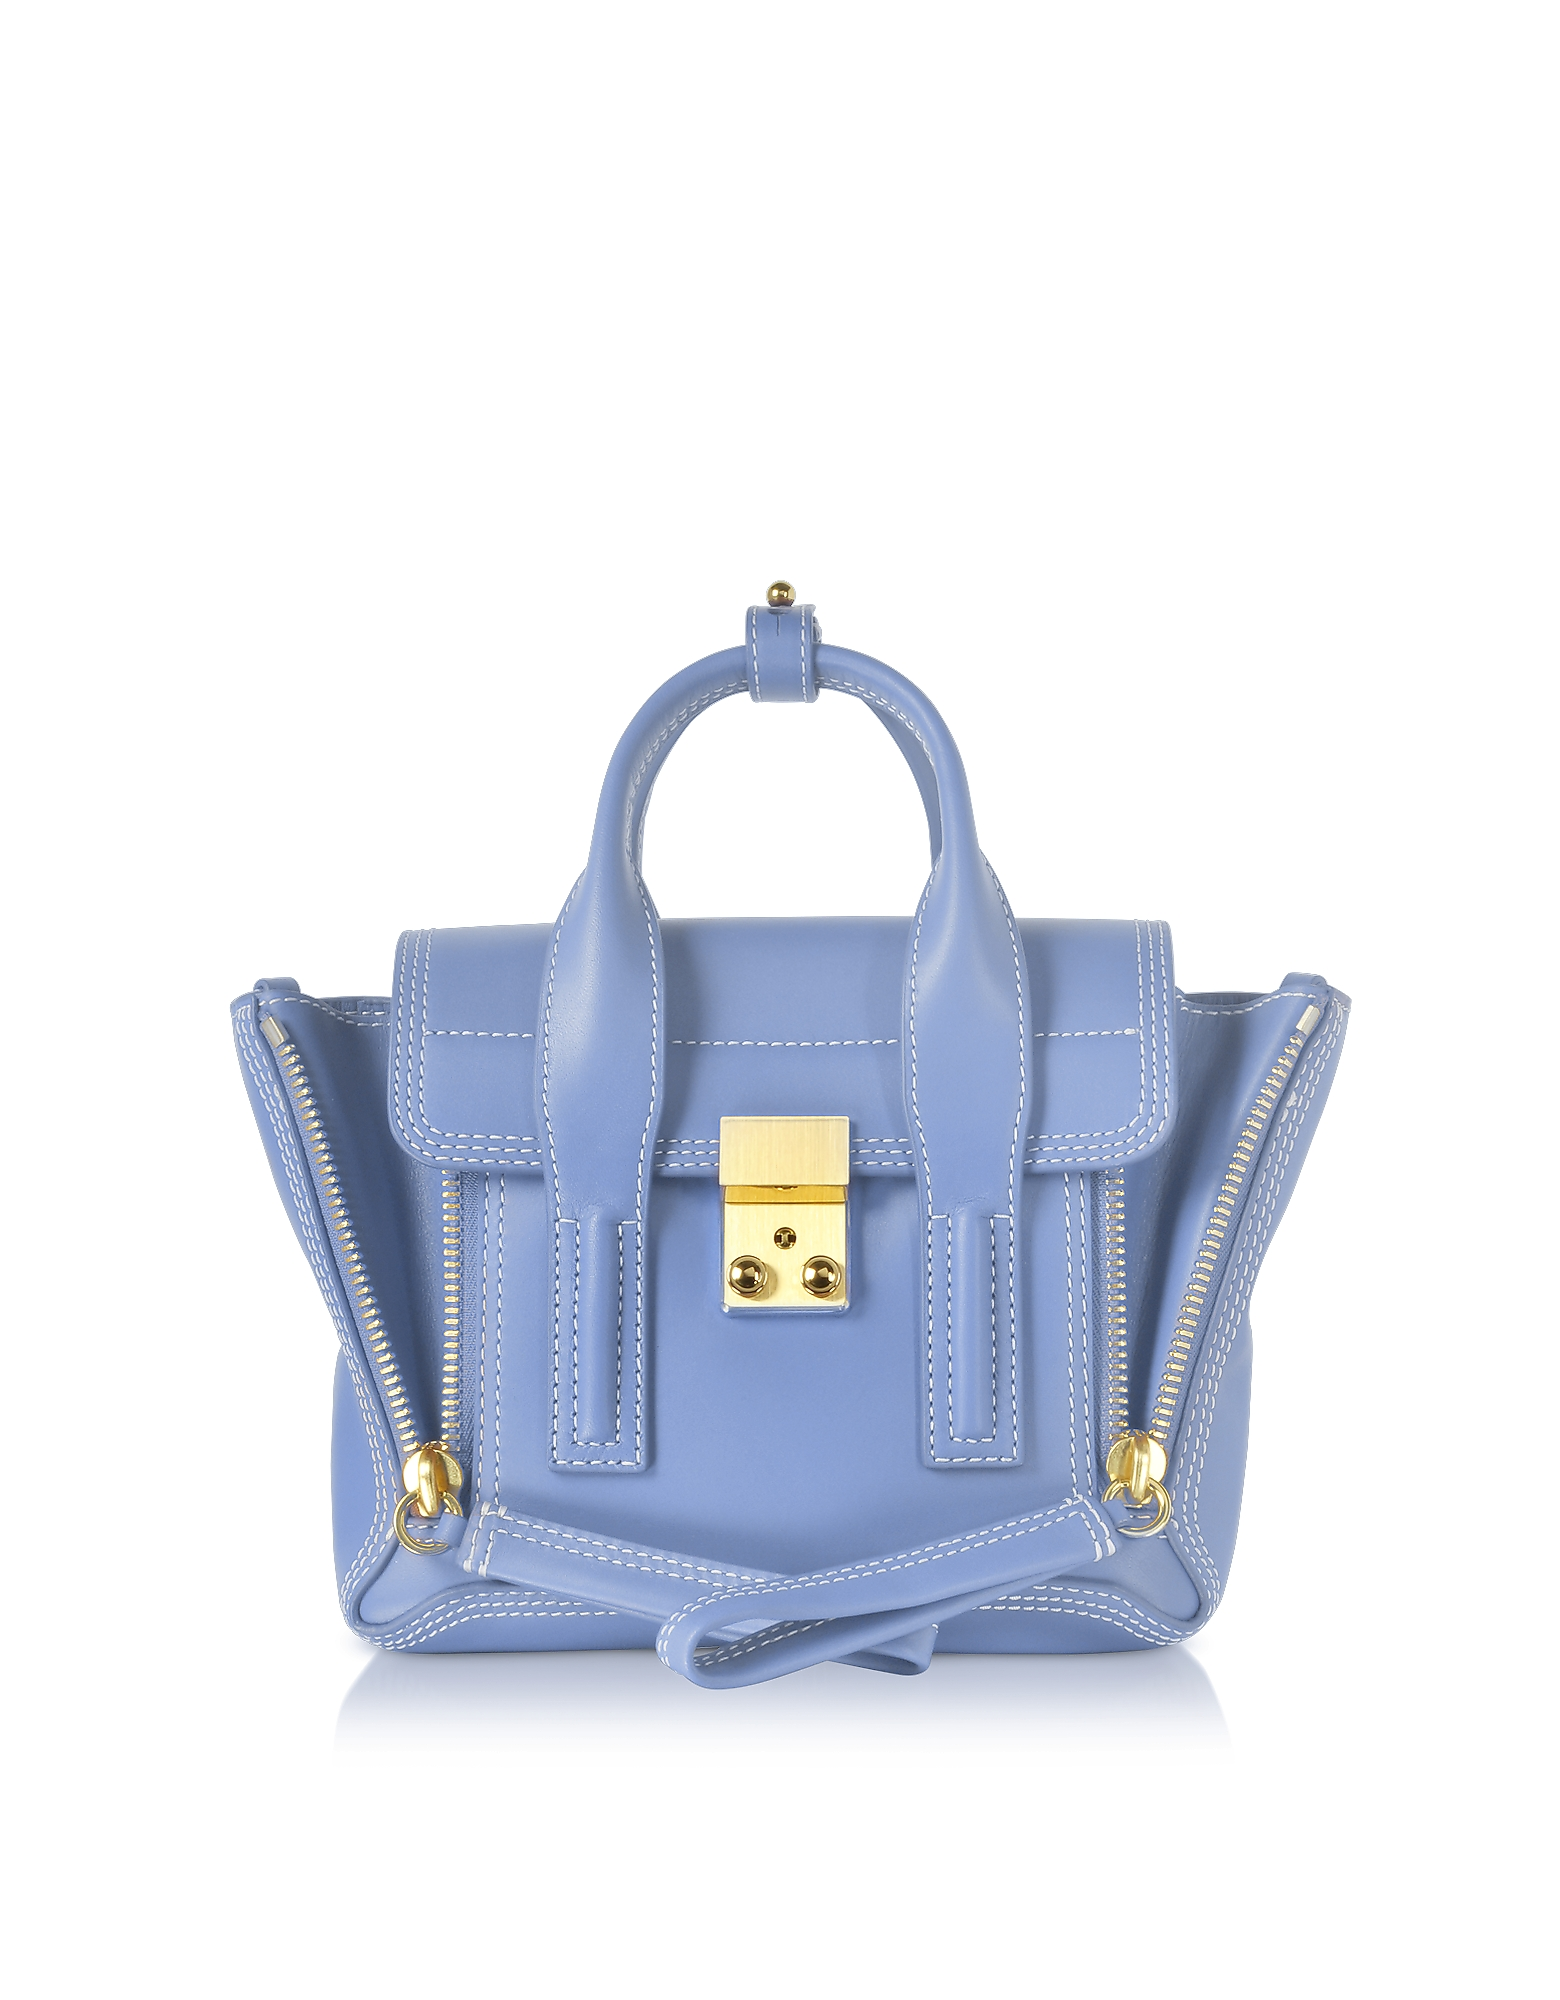 Chambray Pashli Mini Satchel Bag